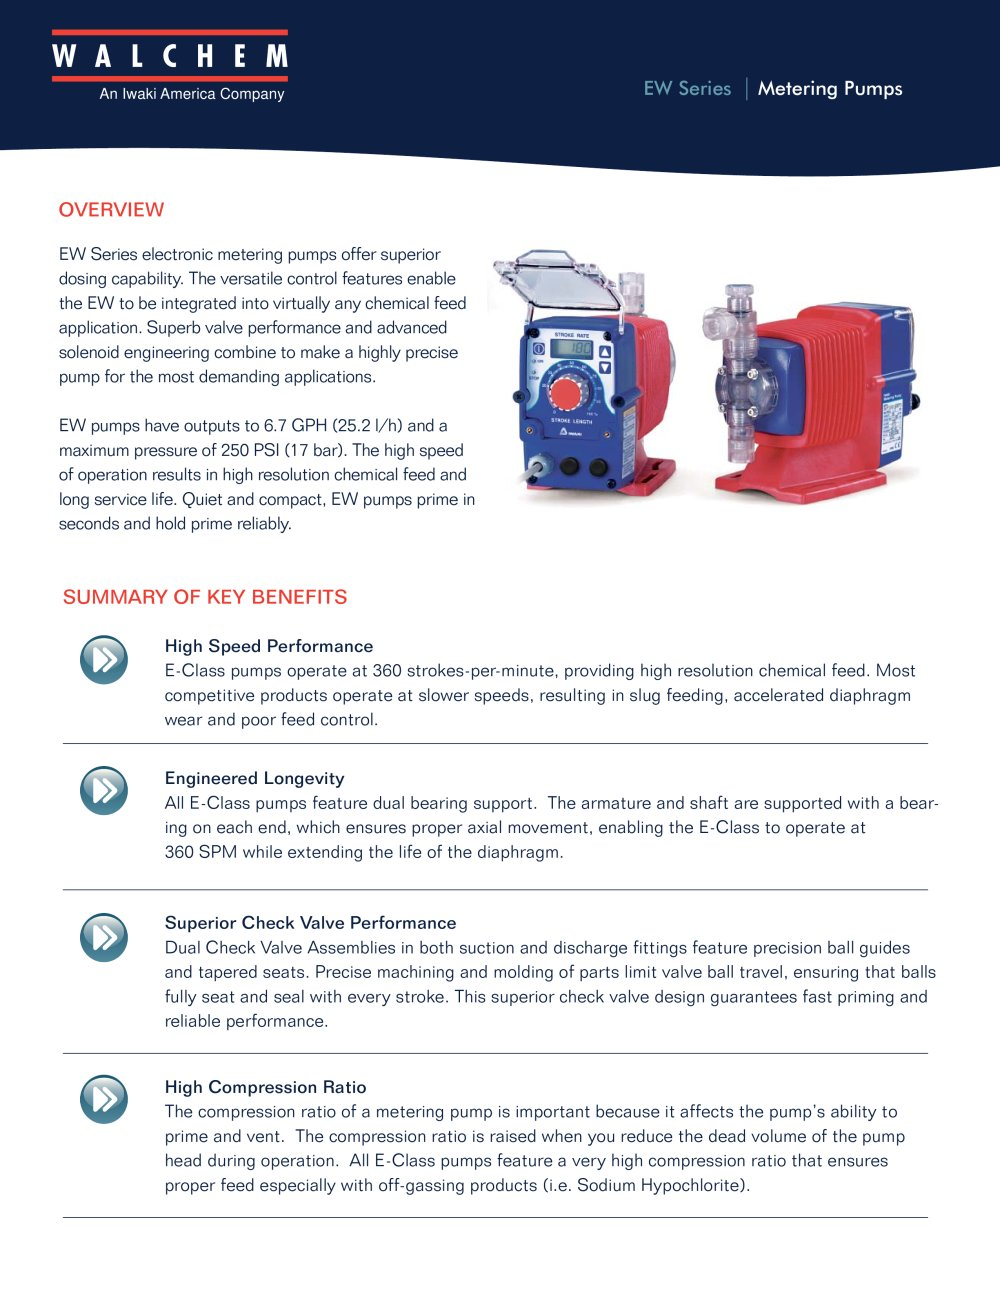 Ew Series Ew Series Metering Pumps Walchem Pdf Catalogue Technical